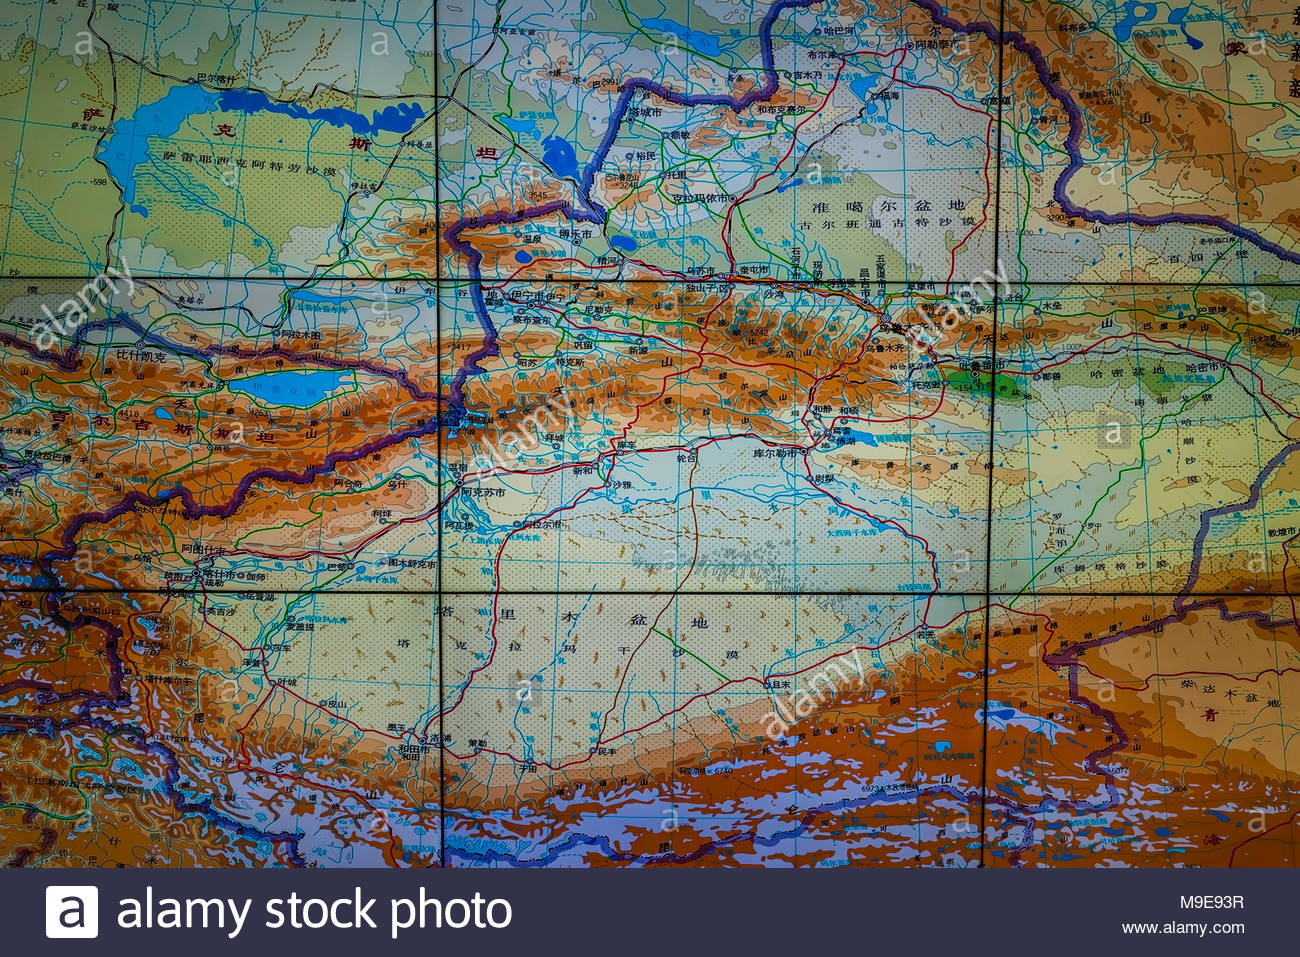 Map of the Xinjiang Uyghur Autonomous Region in nothwest China. The Deserts Of China Map on